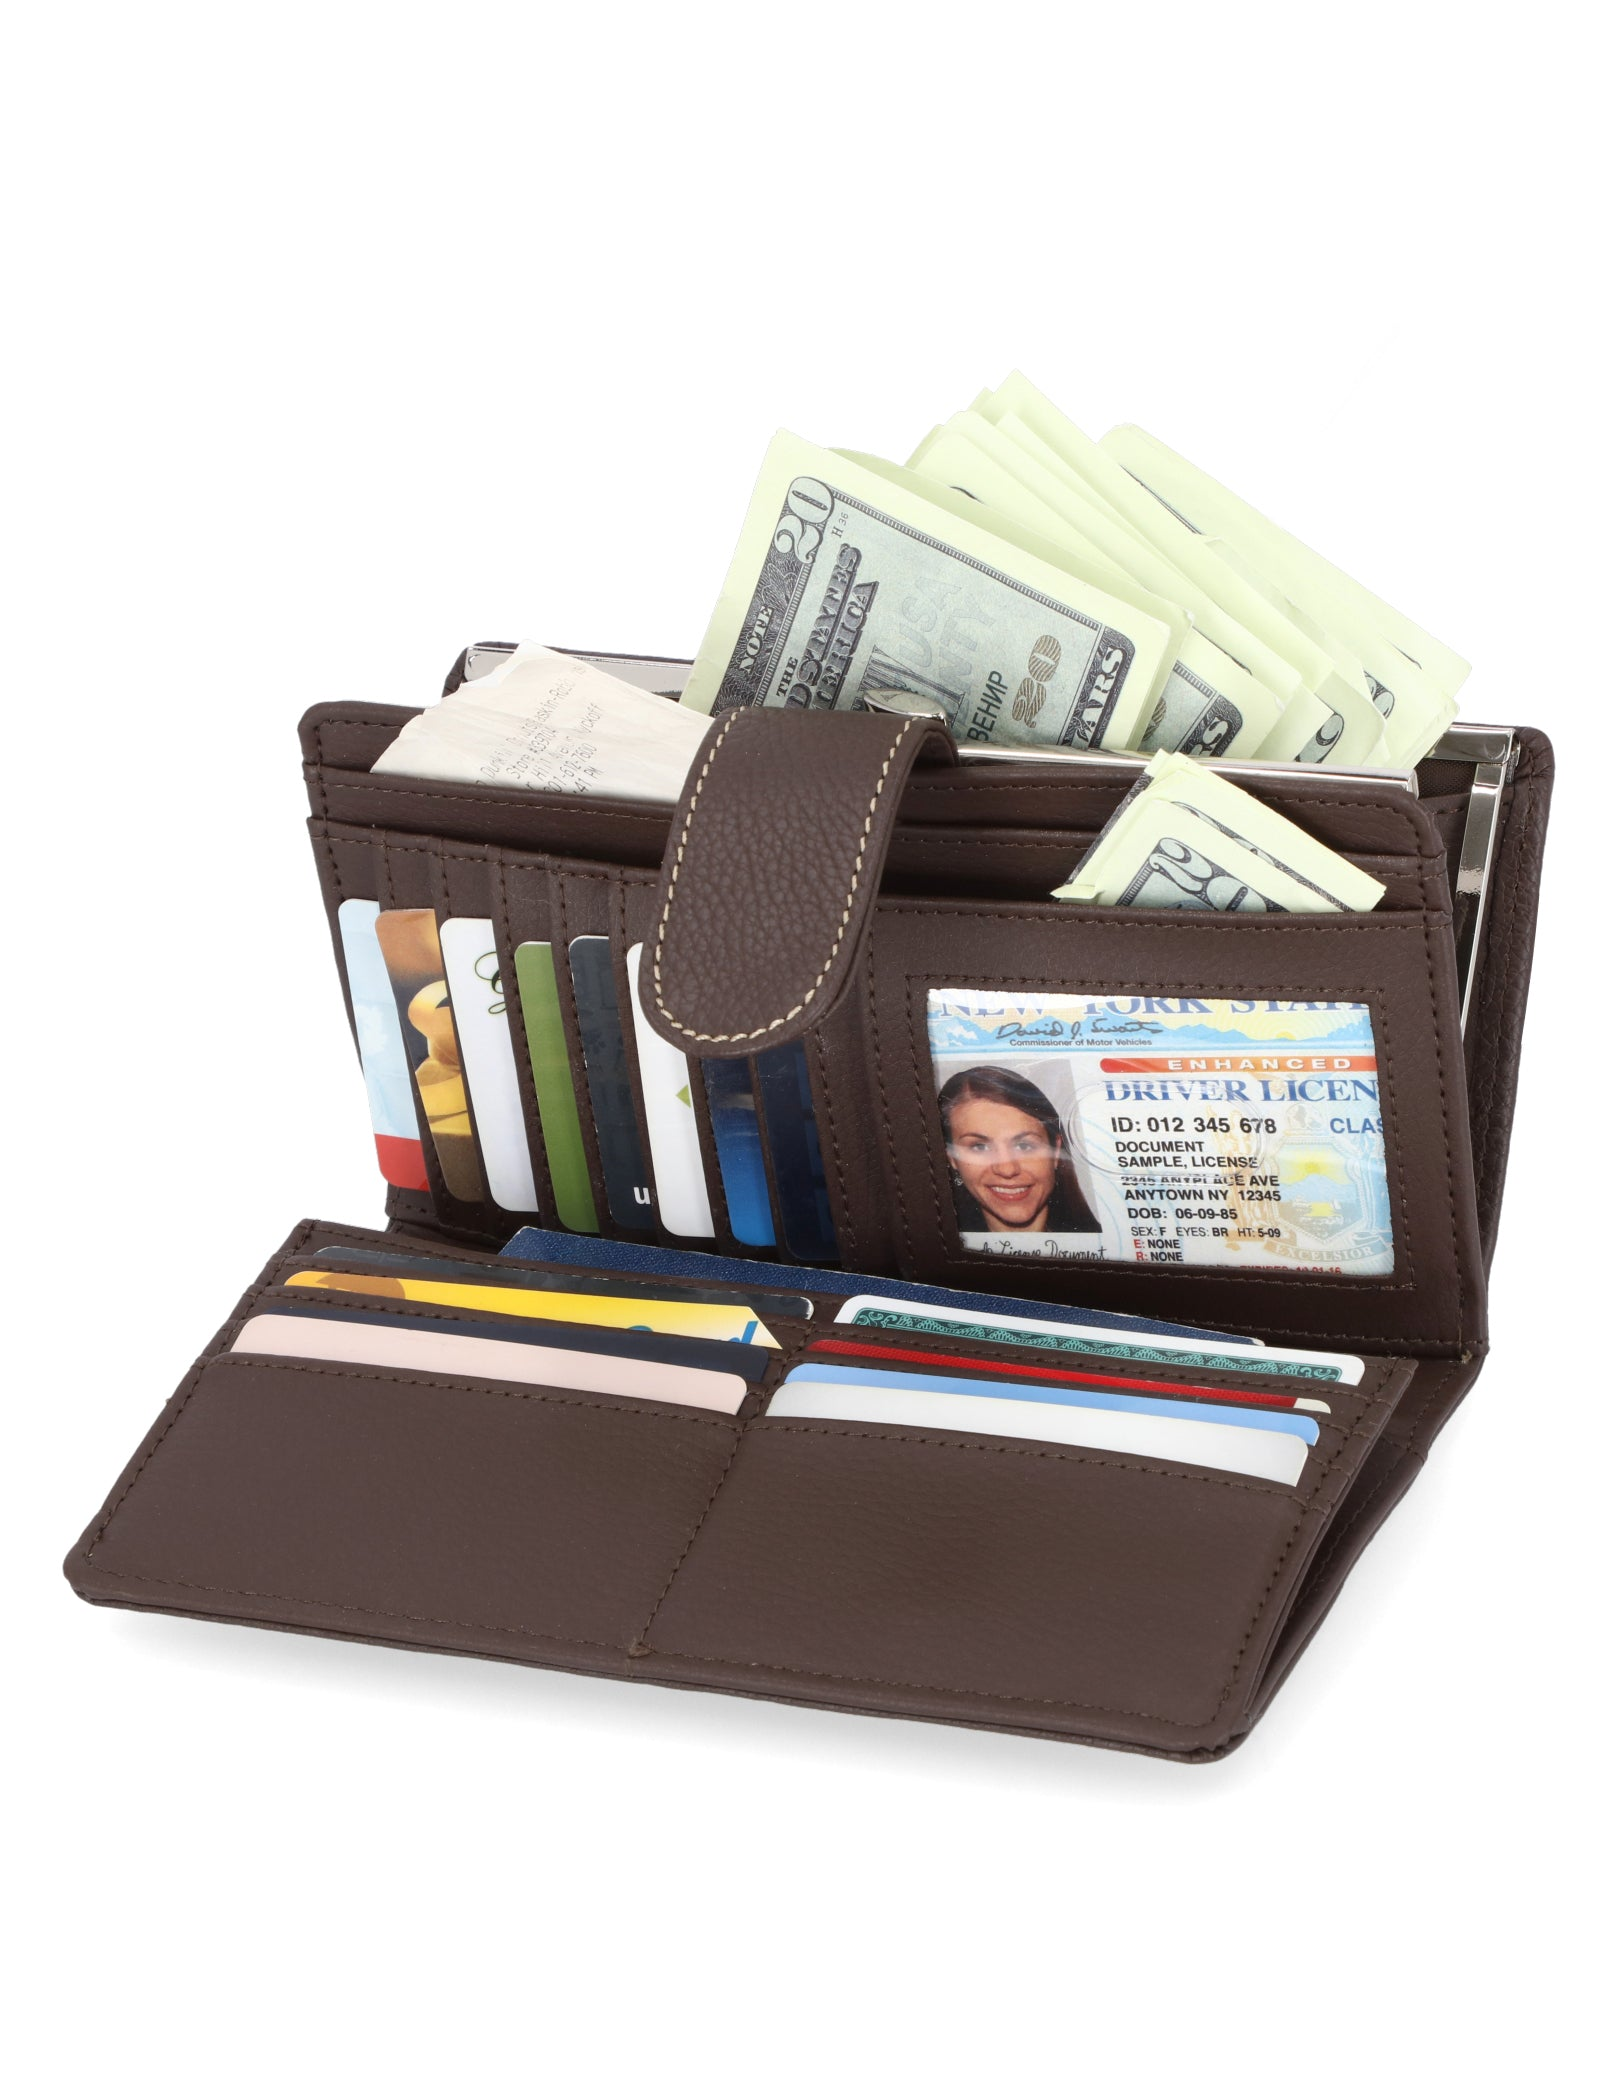 Mundi Wallets - Rio Checkbook Clutch - Women's Wallets - Genuine Leather Wallets For Women - RFID Protection - Organizer Wallets - Multiple Pockets and compartments - Brown